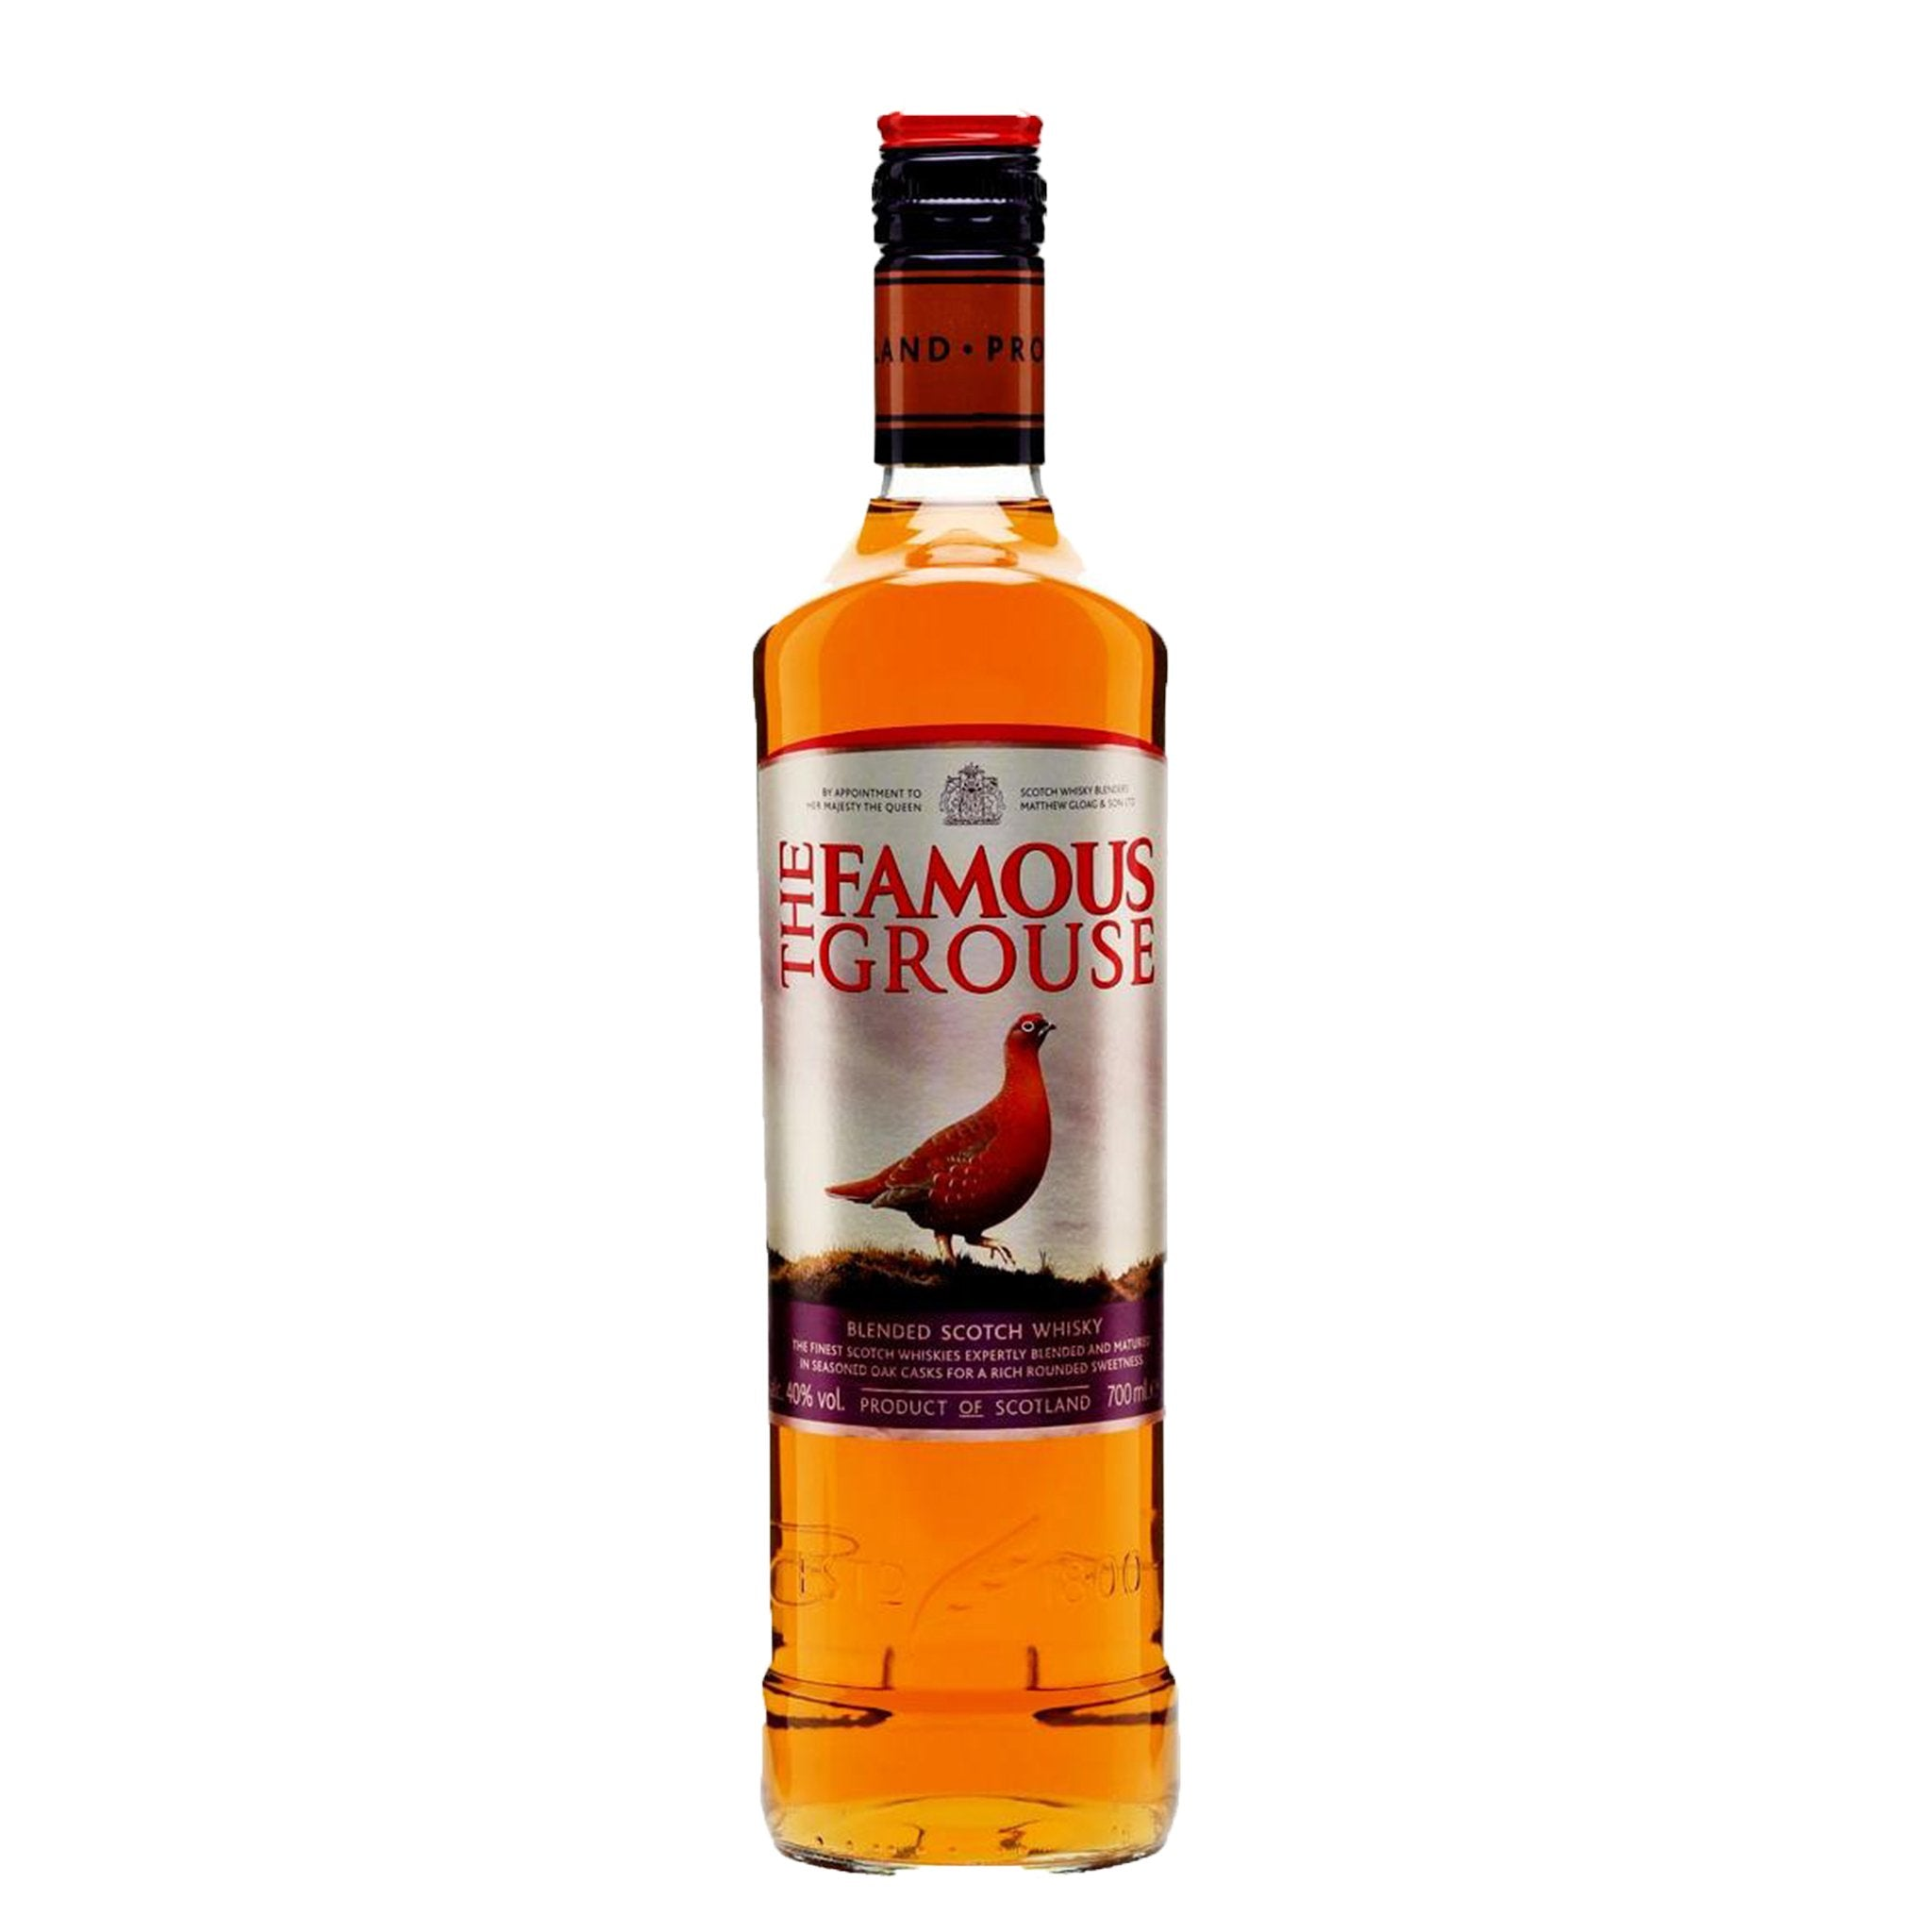 The Famous Grouse PM999, Liquor & Spirits by Drinks Shop